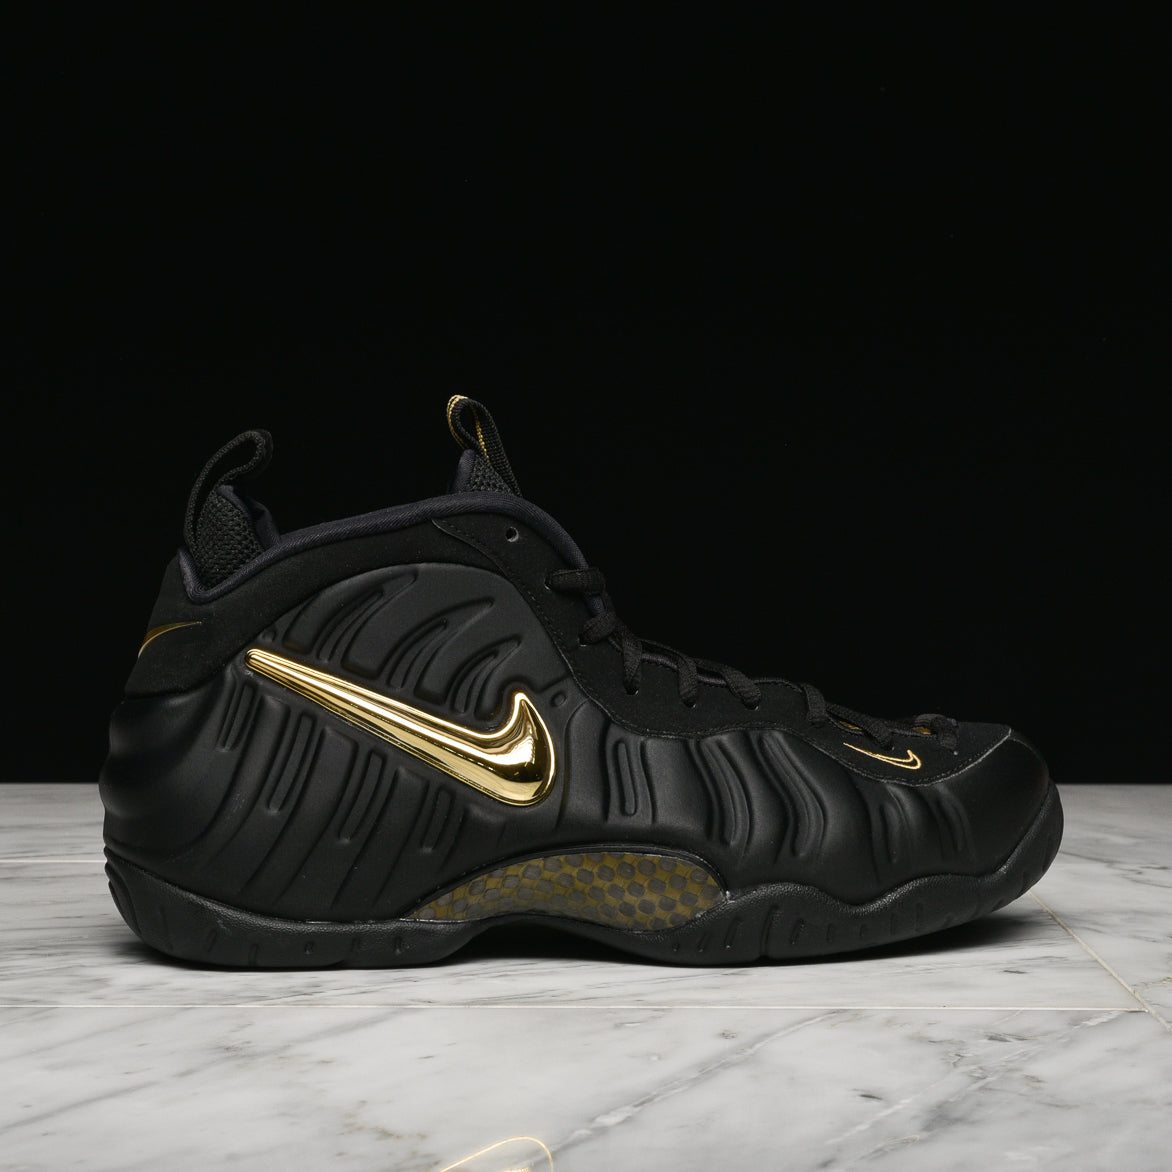 fd76e 0ef28 foamposite pro black multiple colors - newsbdonline.com 4814d0a7c9